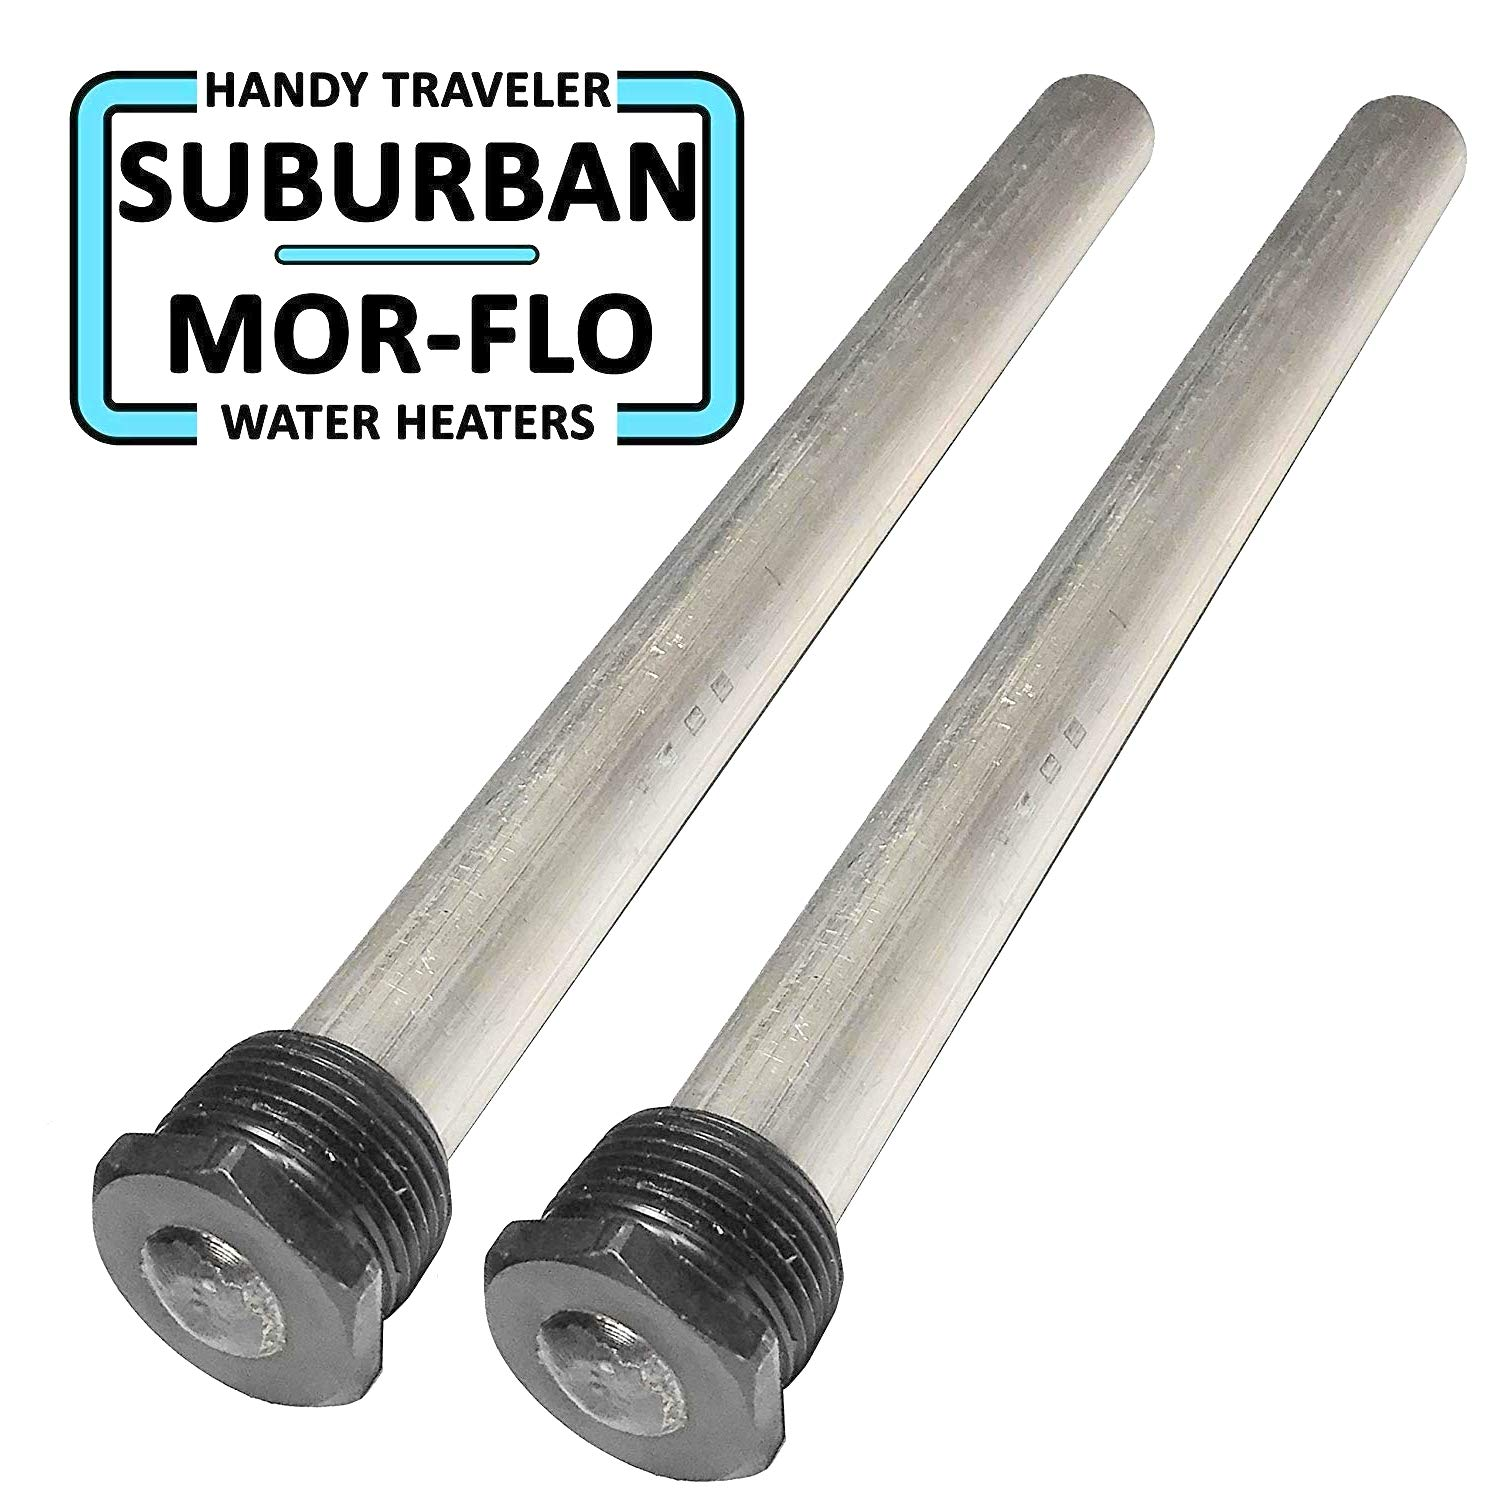 RV Water Heater Anode Rod - Magnesium Anode Rod 232767 Suburban Water Heaters Life - 9.25''Long & 3/4'' Thread - Long Lasting Tank Corrosion Protection by Sio Green